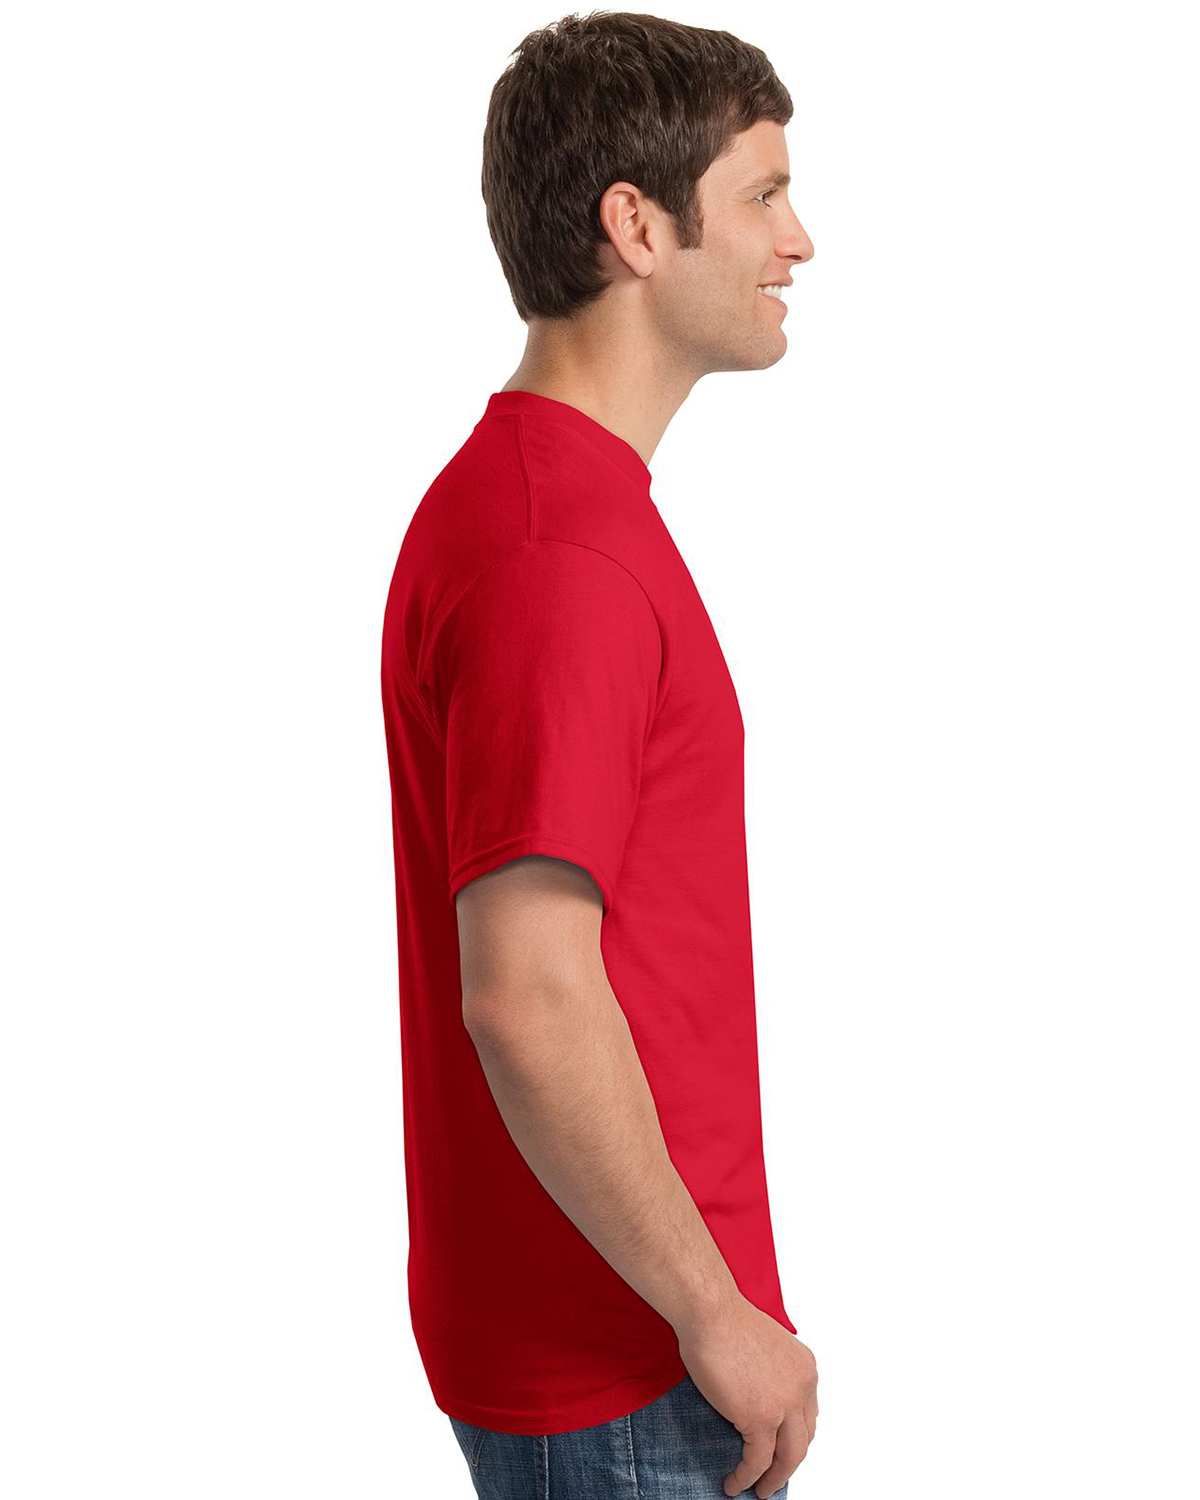 Mens Beefy 100 Cotton T Shirt With Pocket At Big And Tall